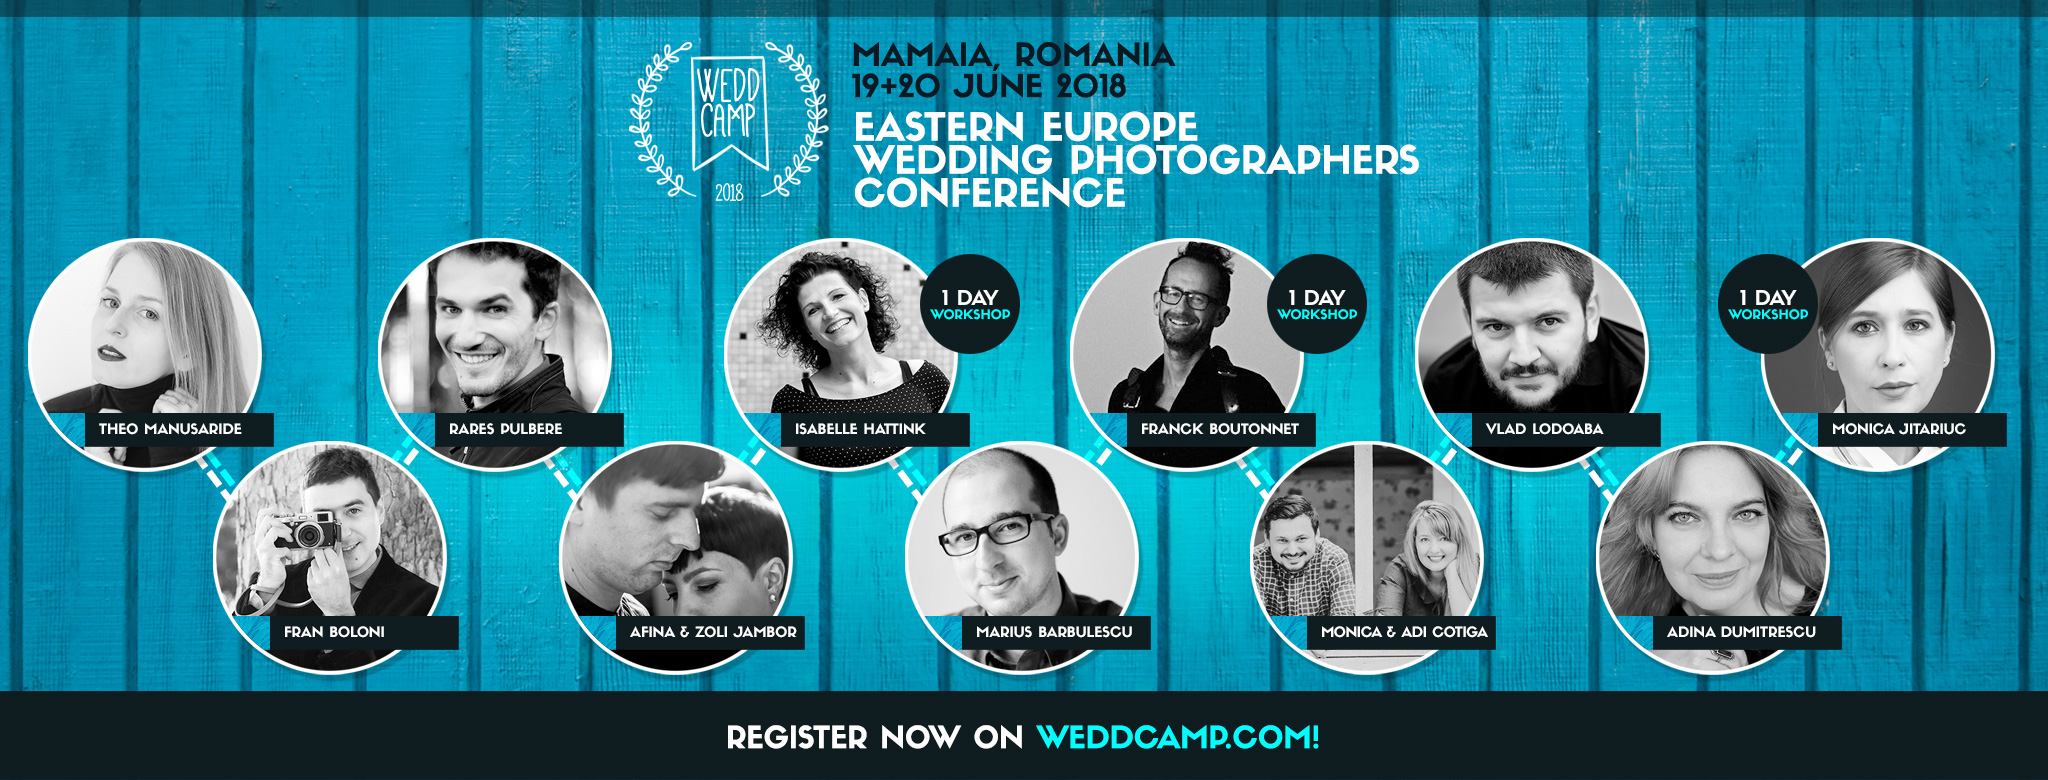 weddcamp conference